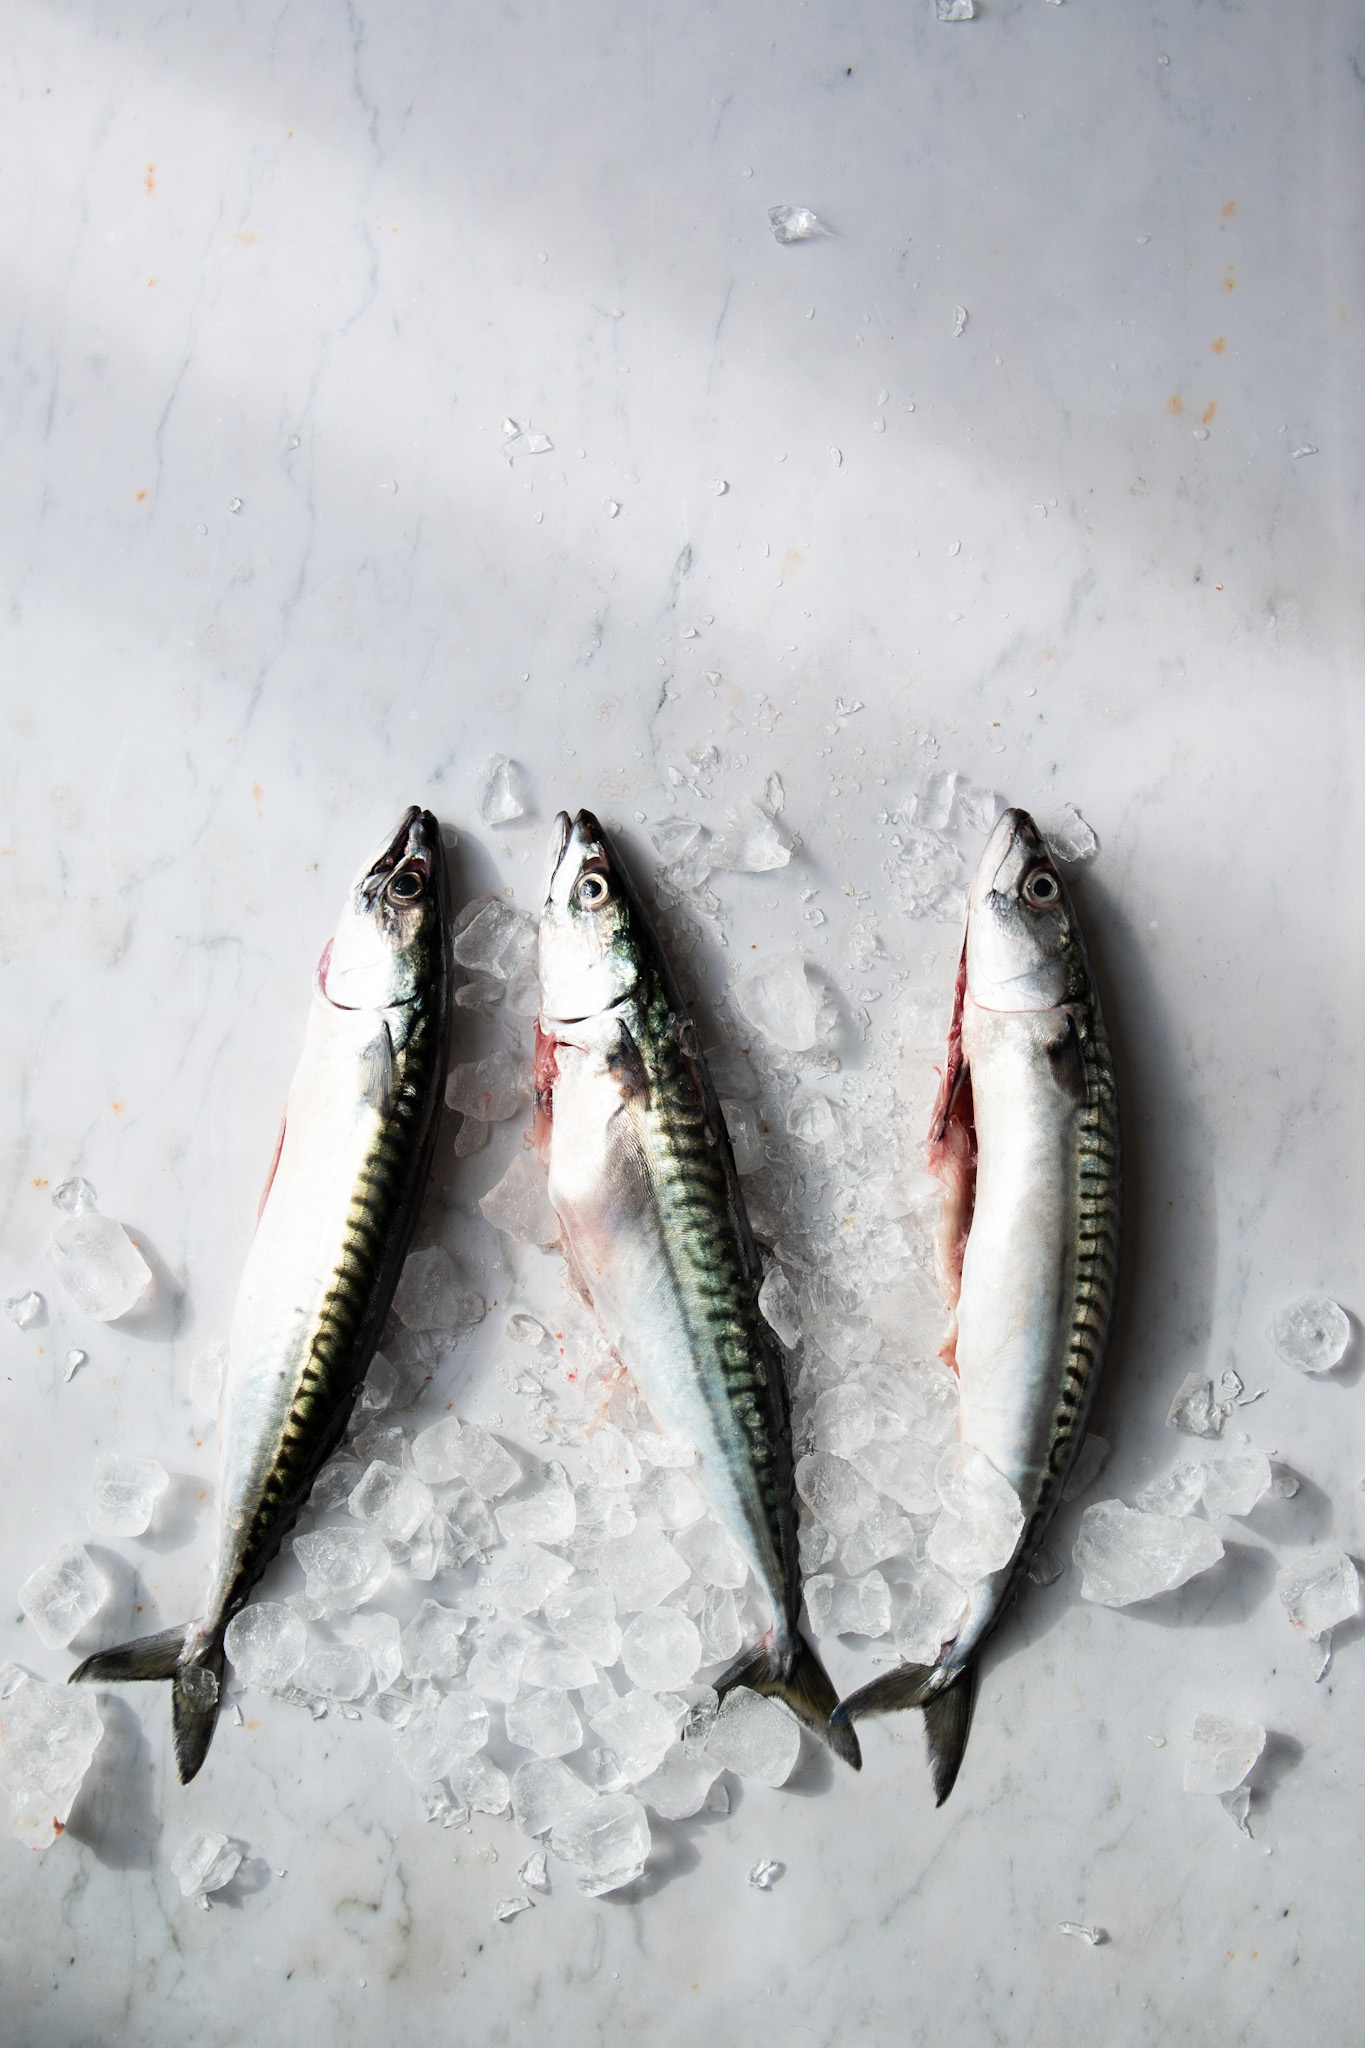 Mackerel 1